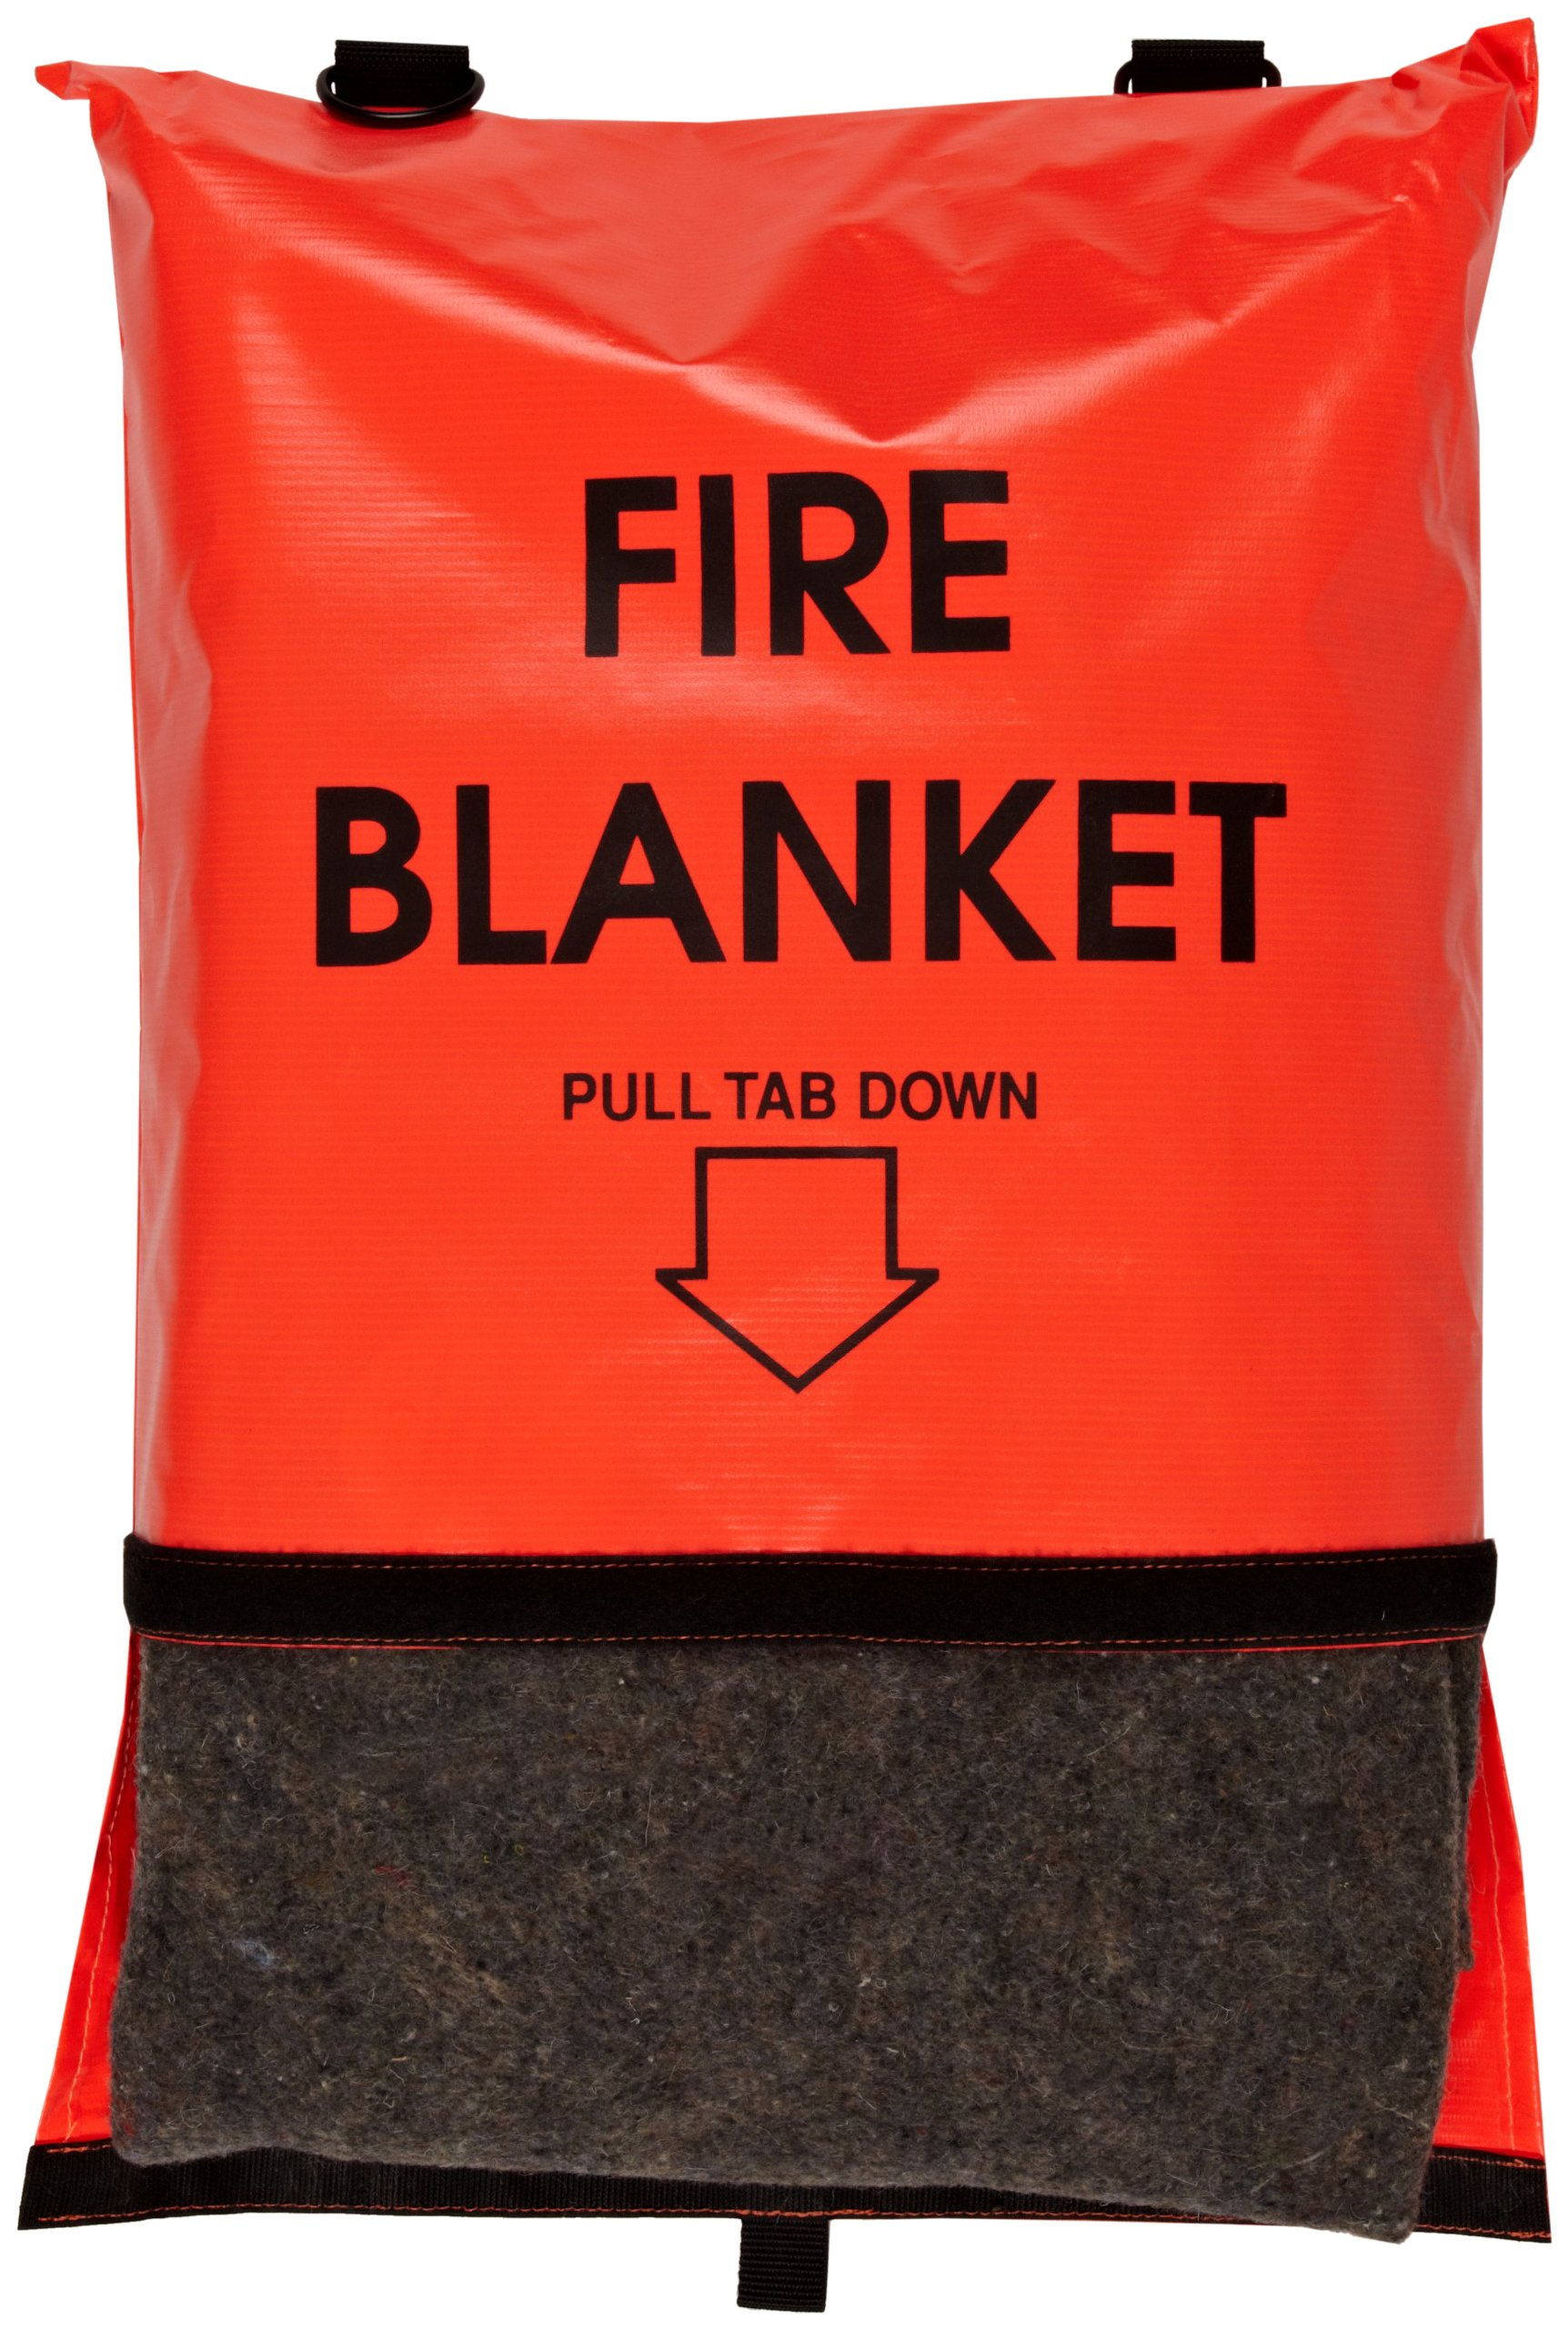 Think Safe 911-83700 Bright Orange Fire Blanket and Bag with Velcro Closure, 84'' L X 62'' W